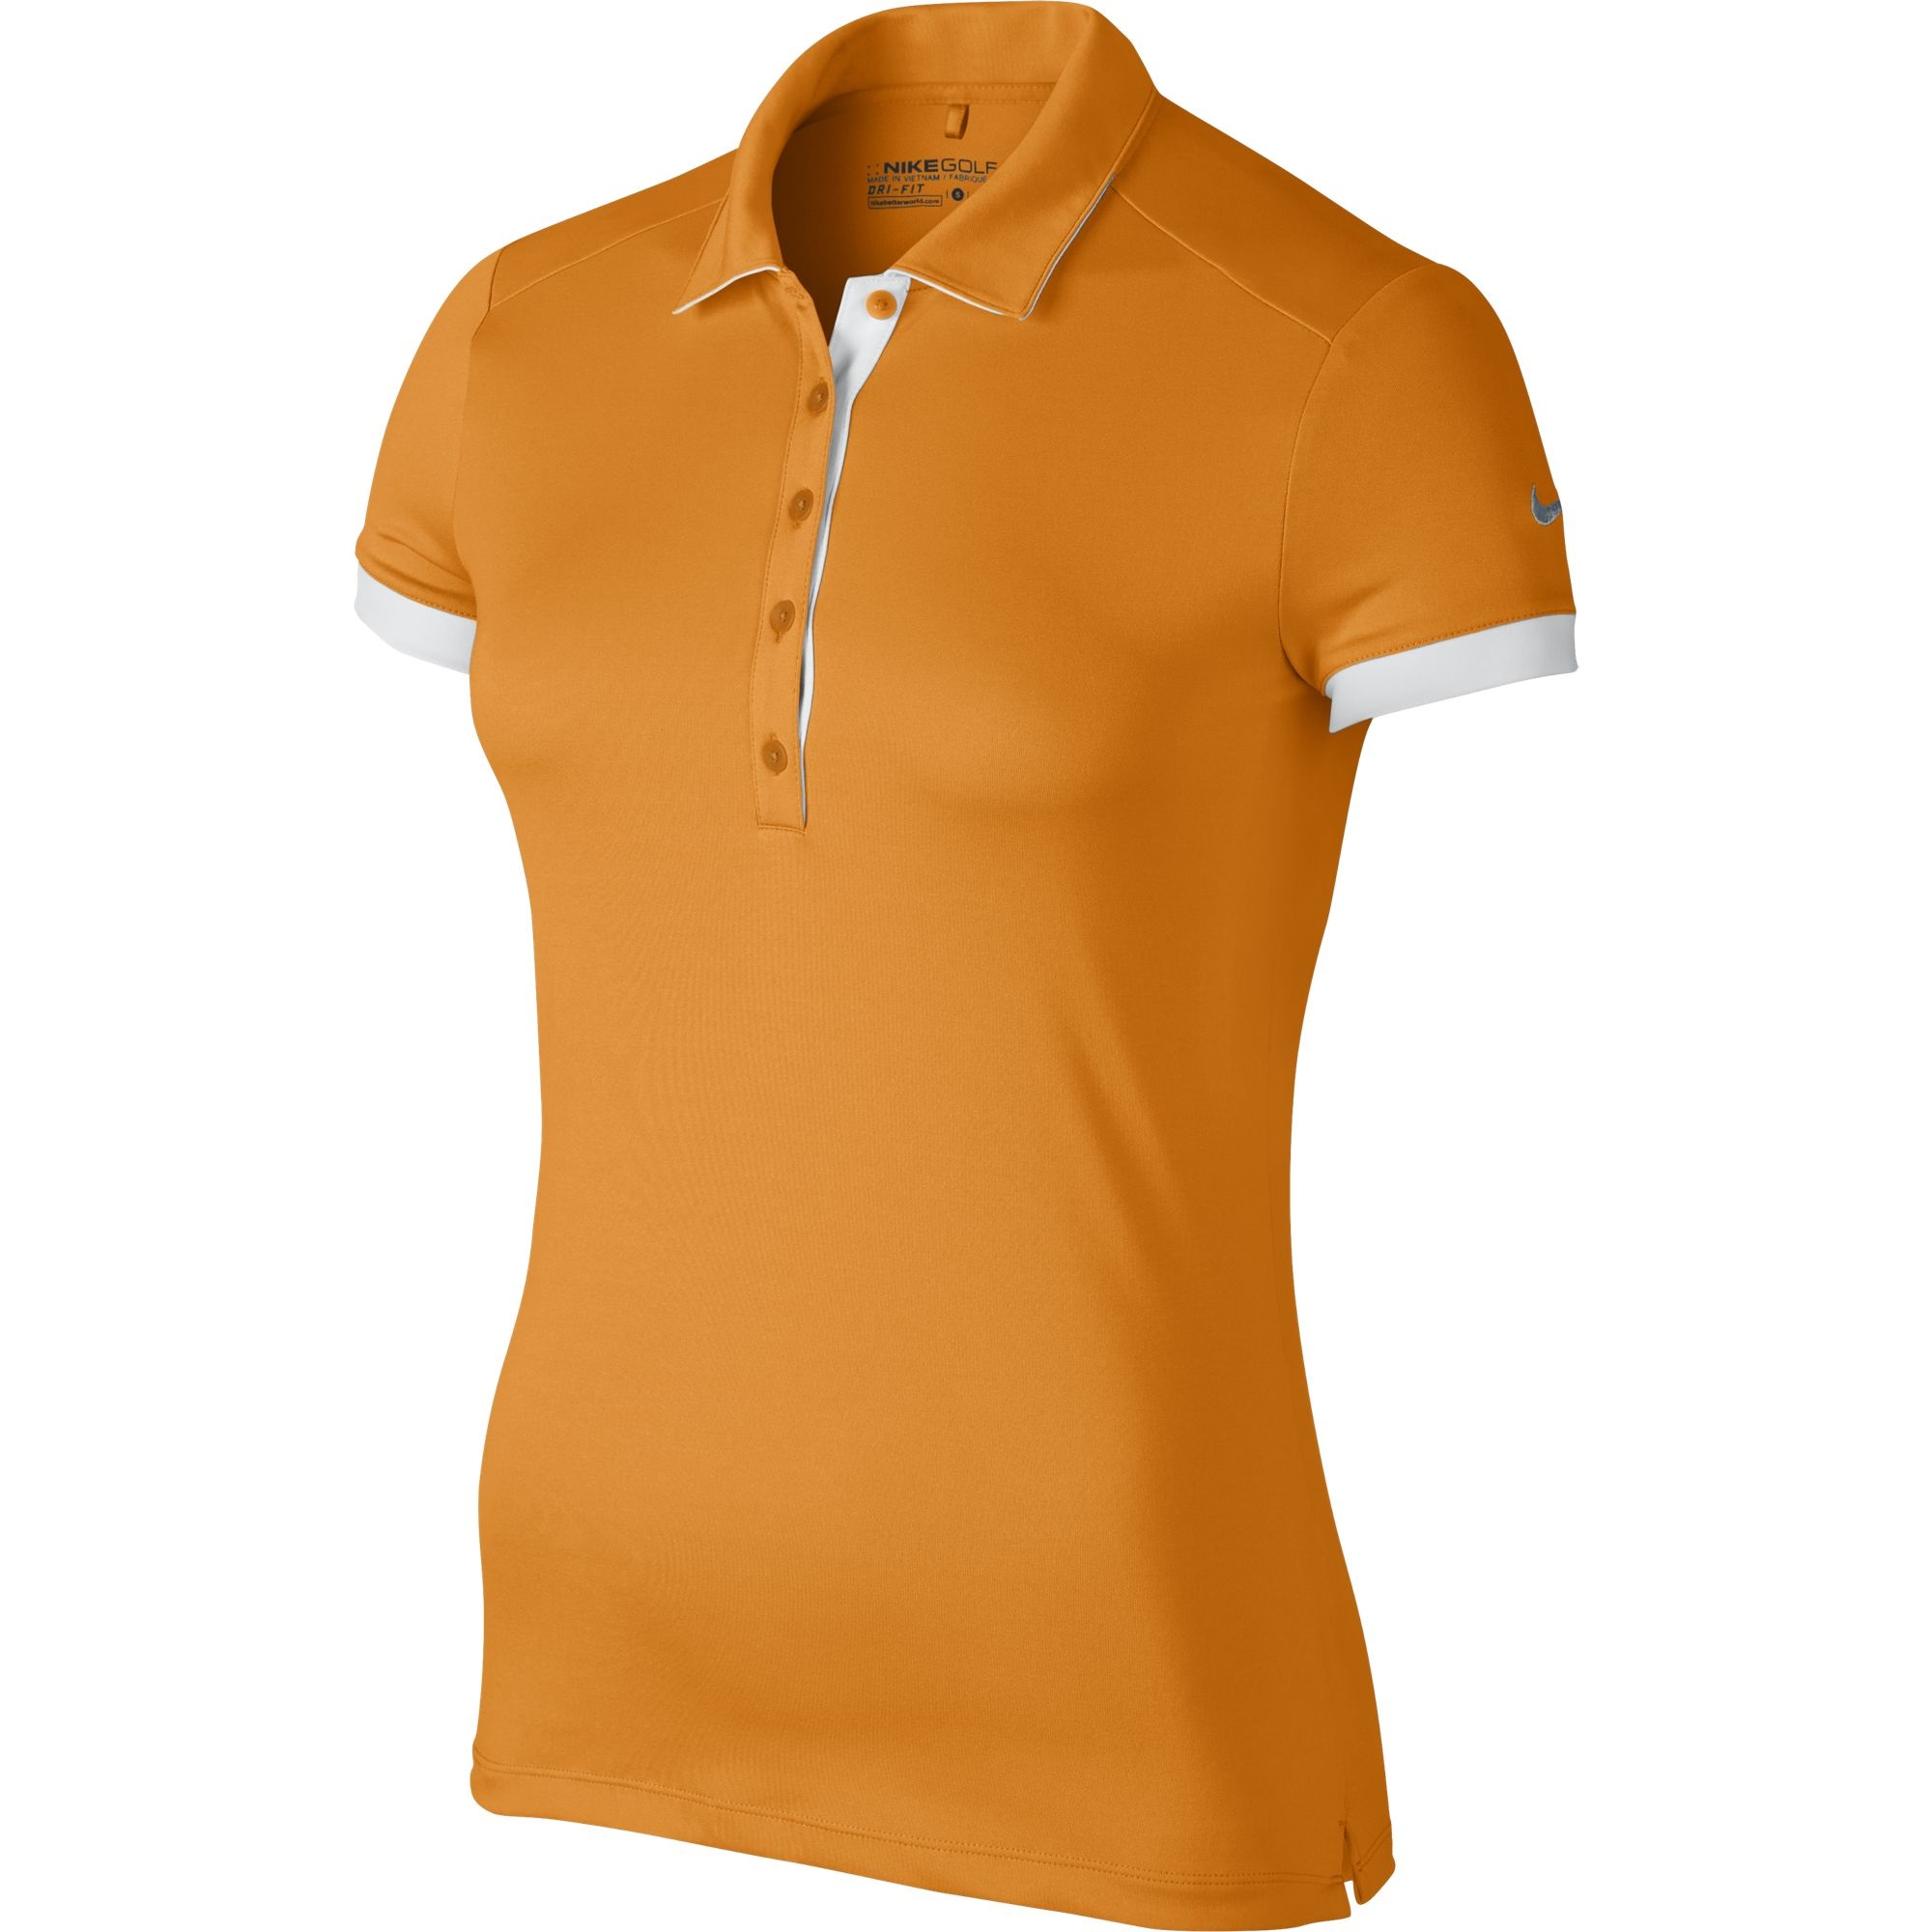 af7aa4f3a215 Details about Nike Golf CLOSEOUT Women s Victory Colorblock Polo ORANGE  725583-873 Was  55